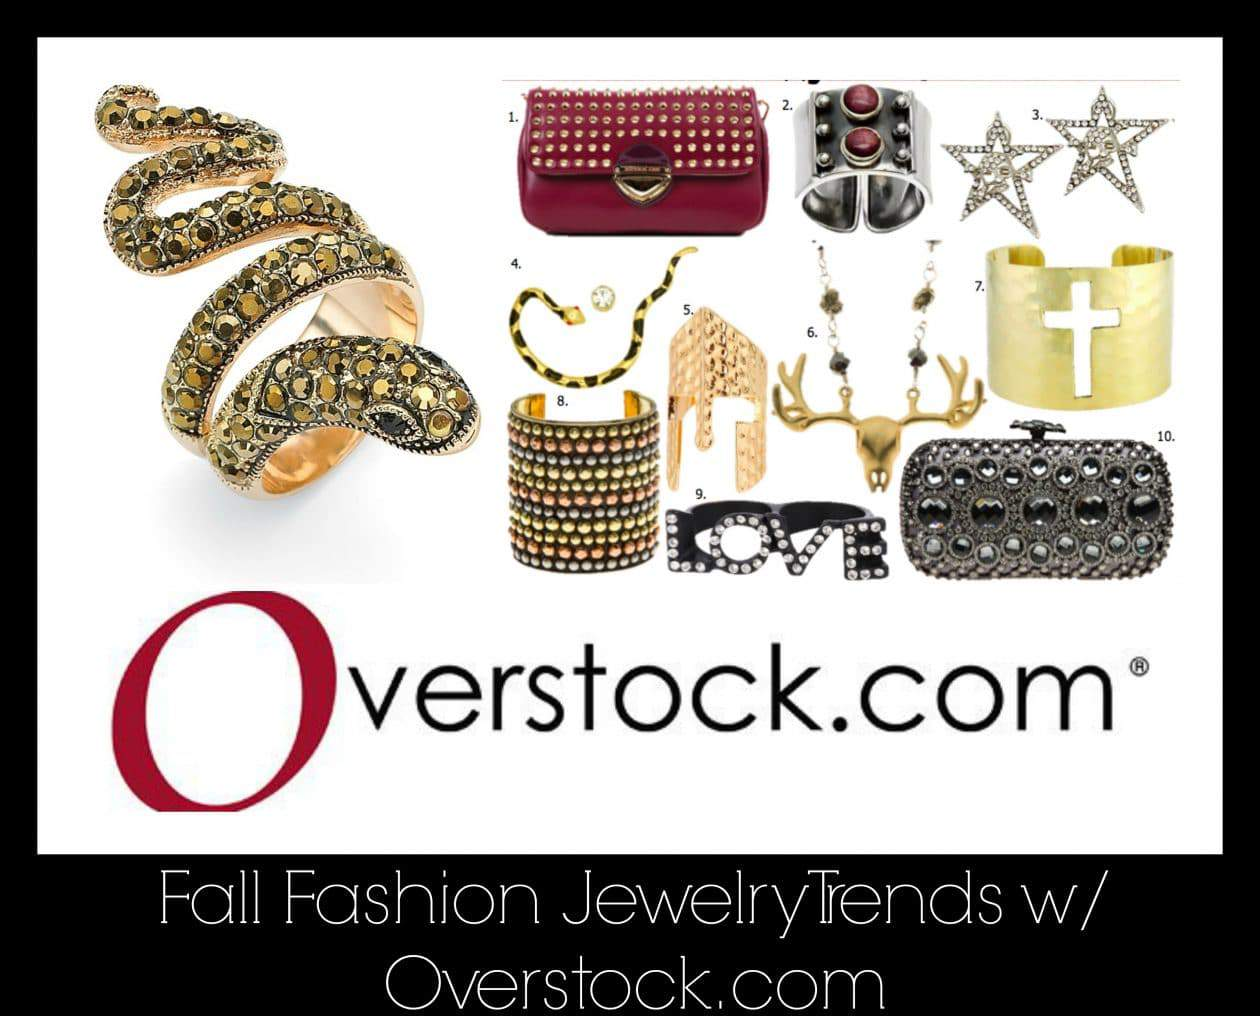 overstock.com fall fashion jewelry